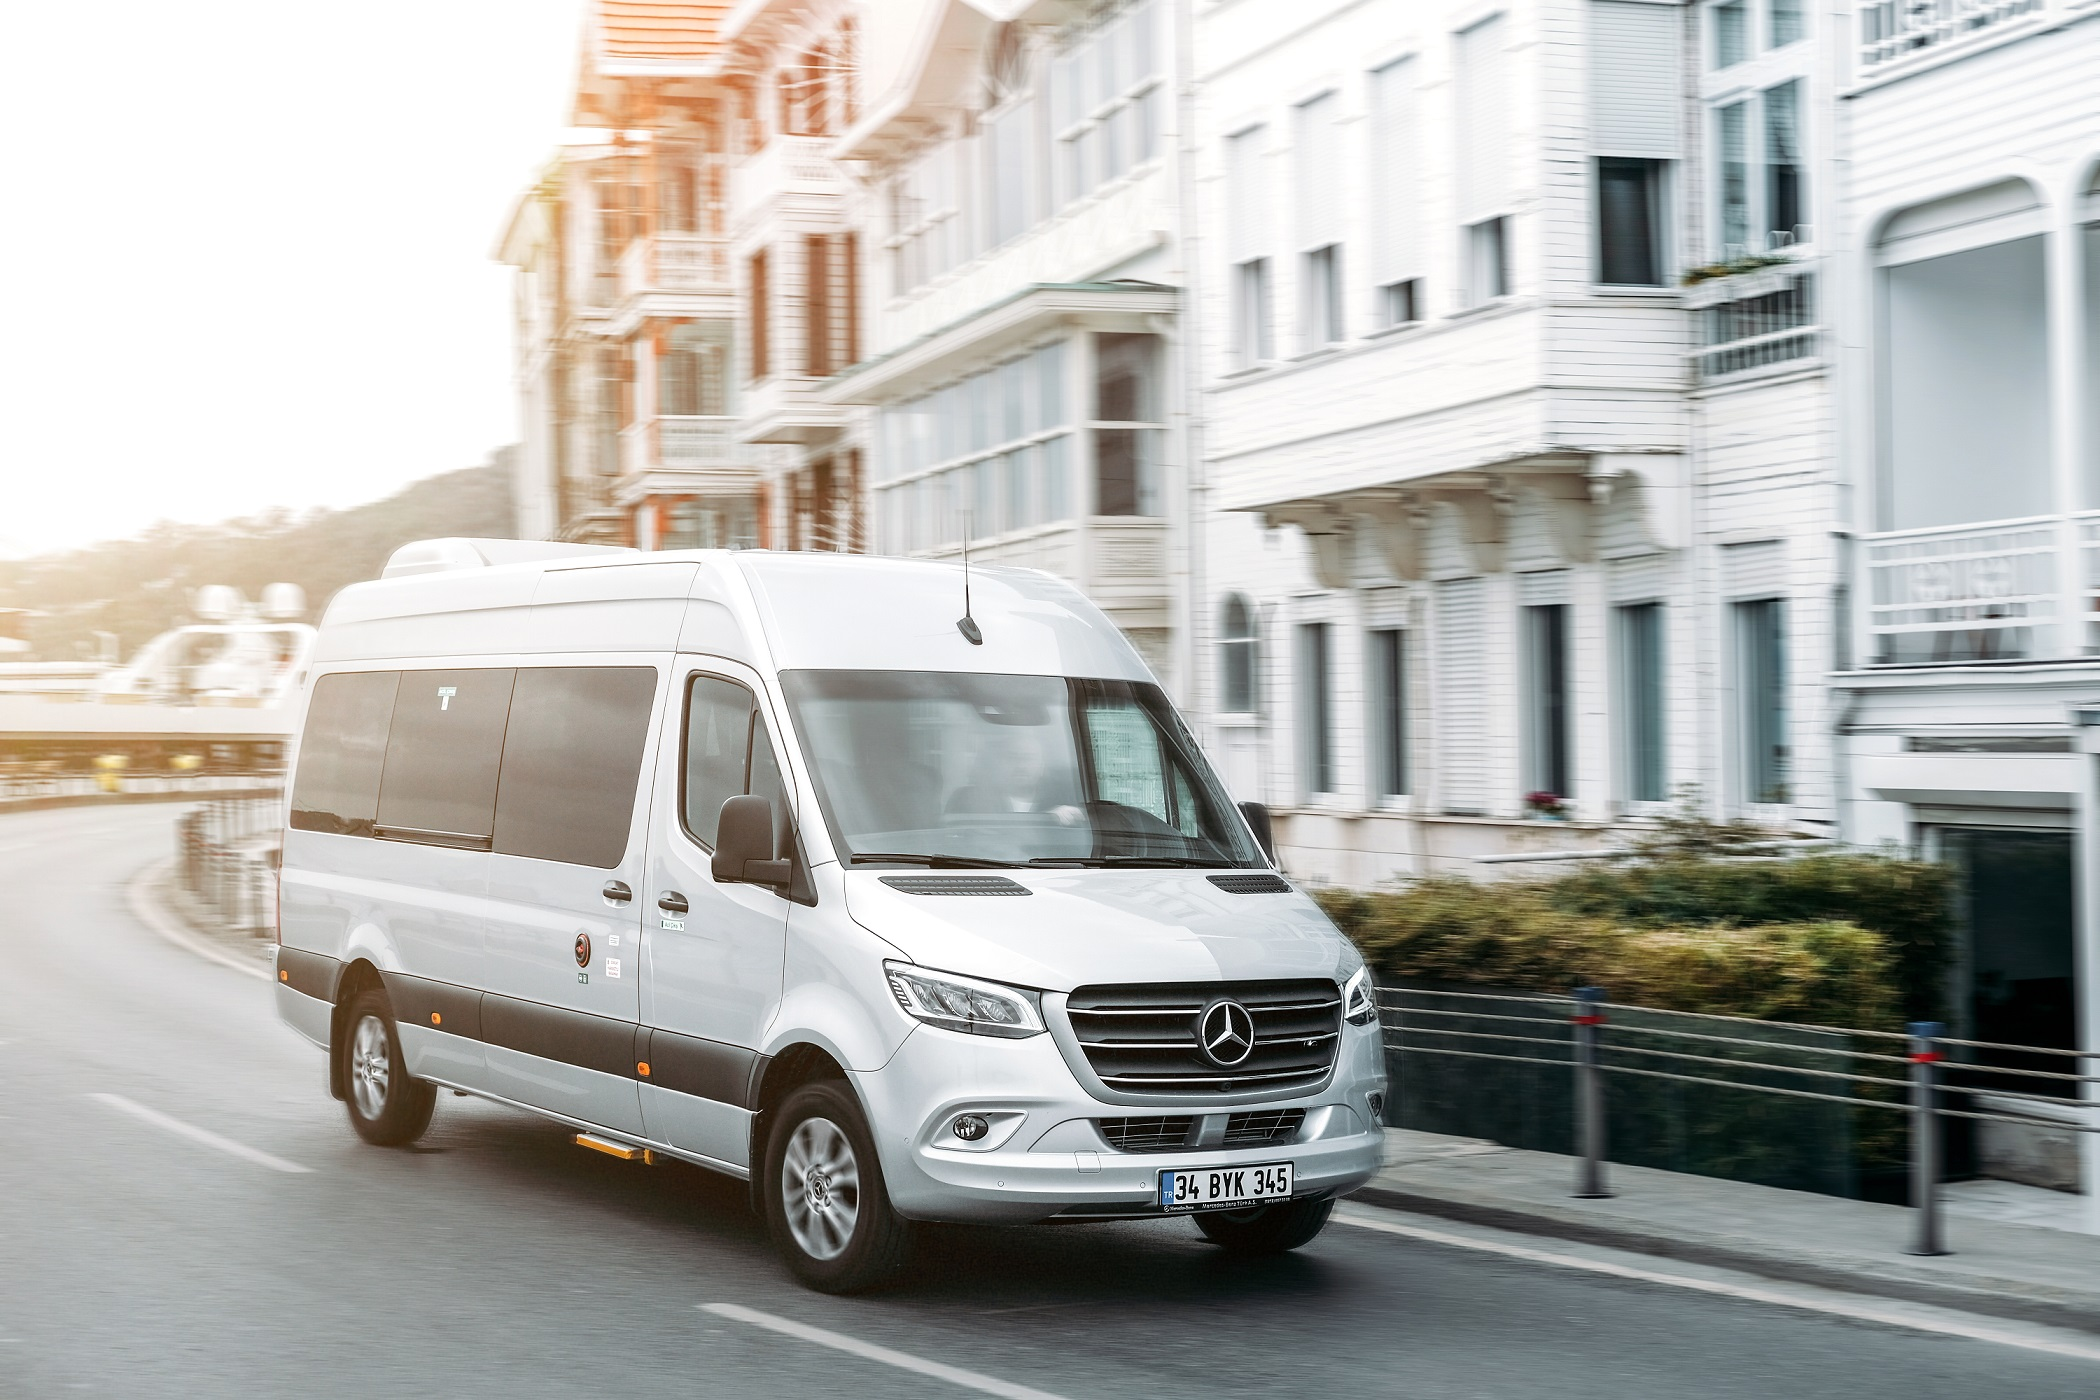 mercedes-benz-sprinter-001.jpg